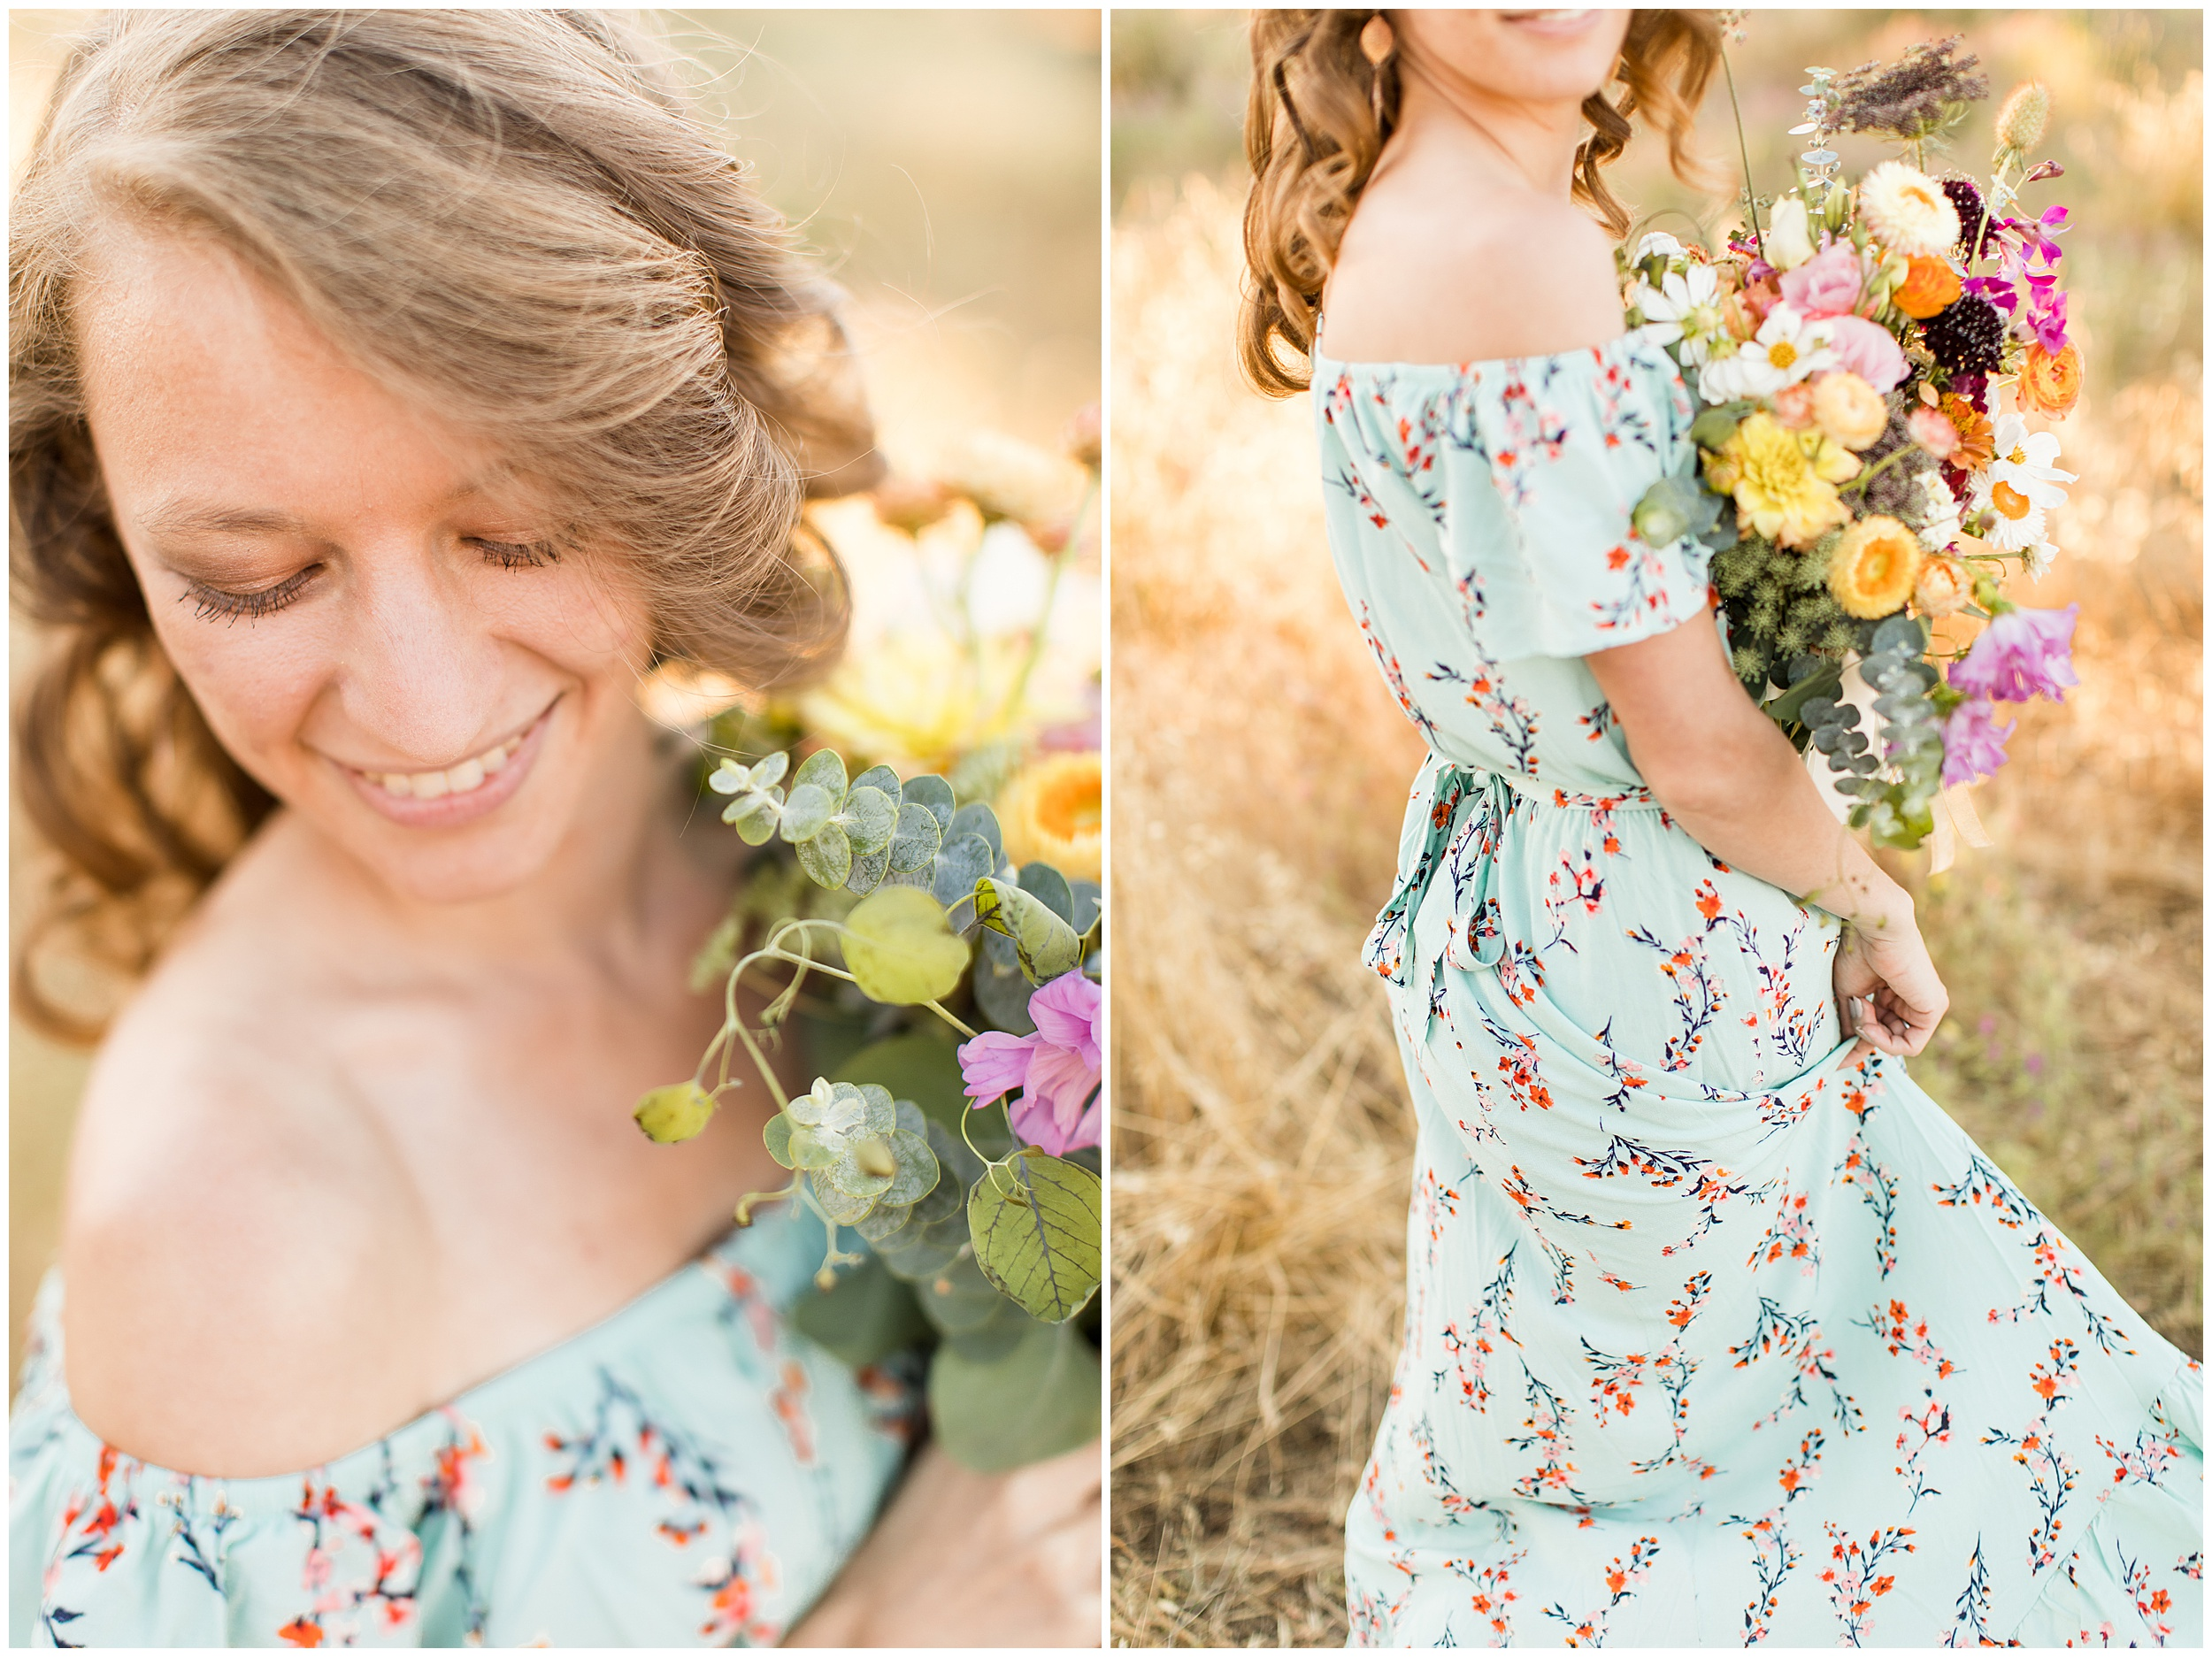 2019 bay area wedding photographer colorful florals flowers styled engagement session Angela Sue Photography_0014.jpg